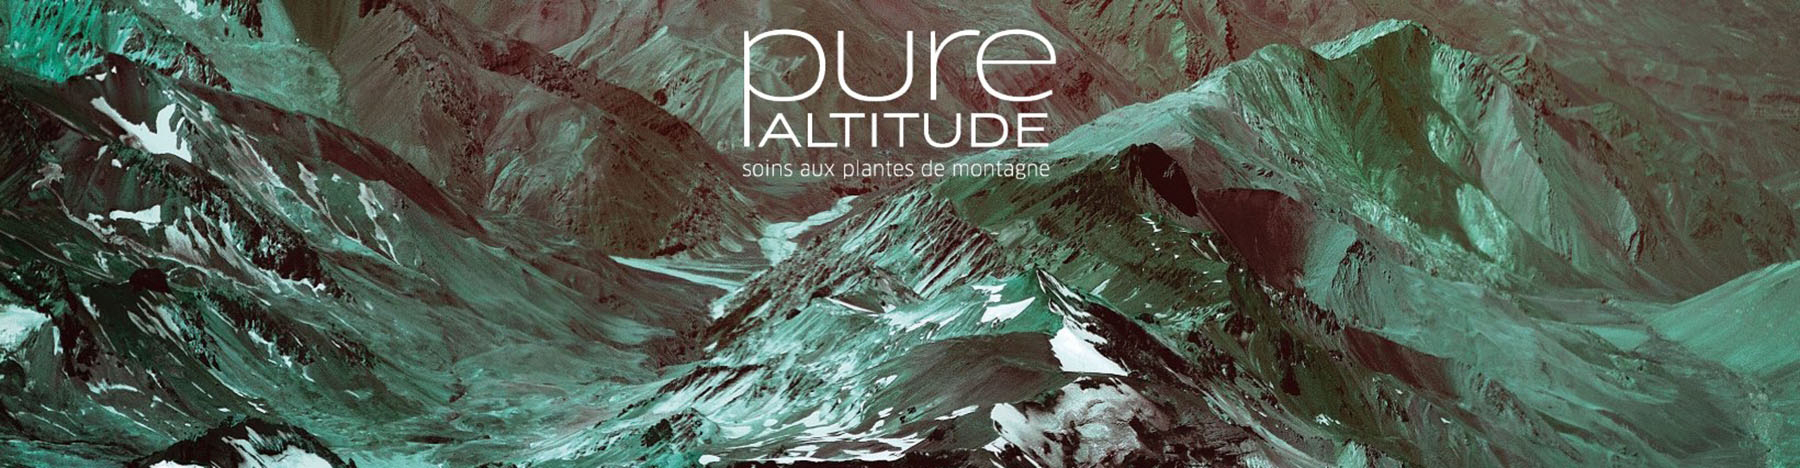 PURE ALTITUDE-Fleur de Neige | Hotellerie online Shopping